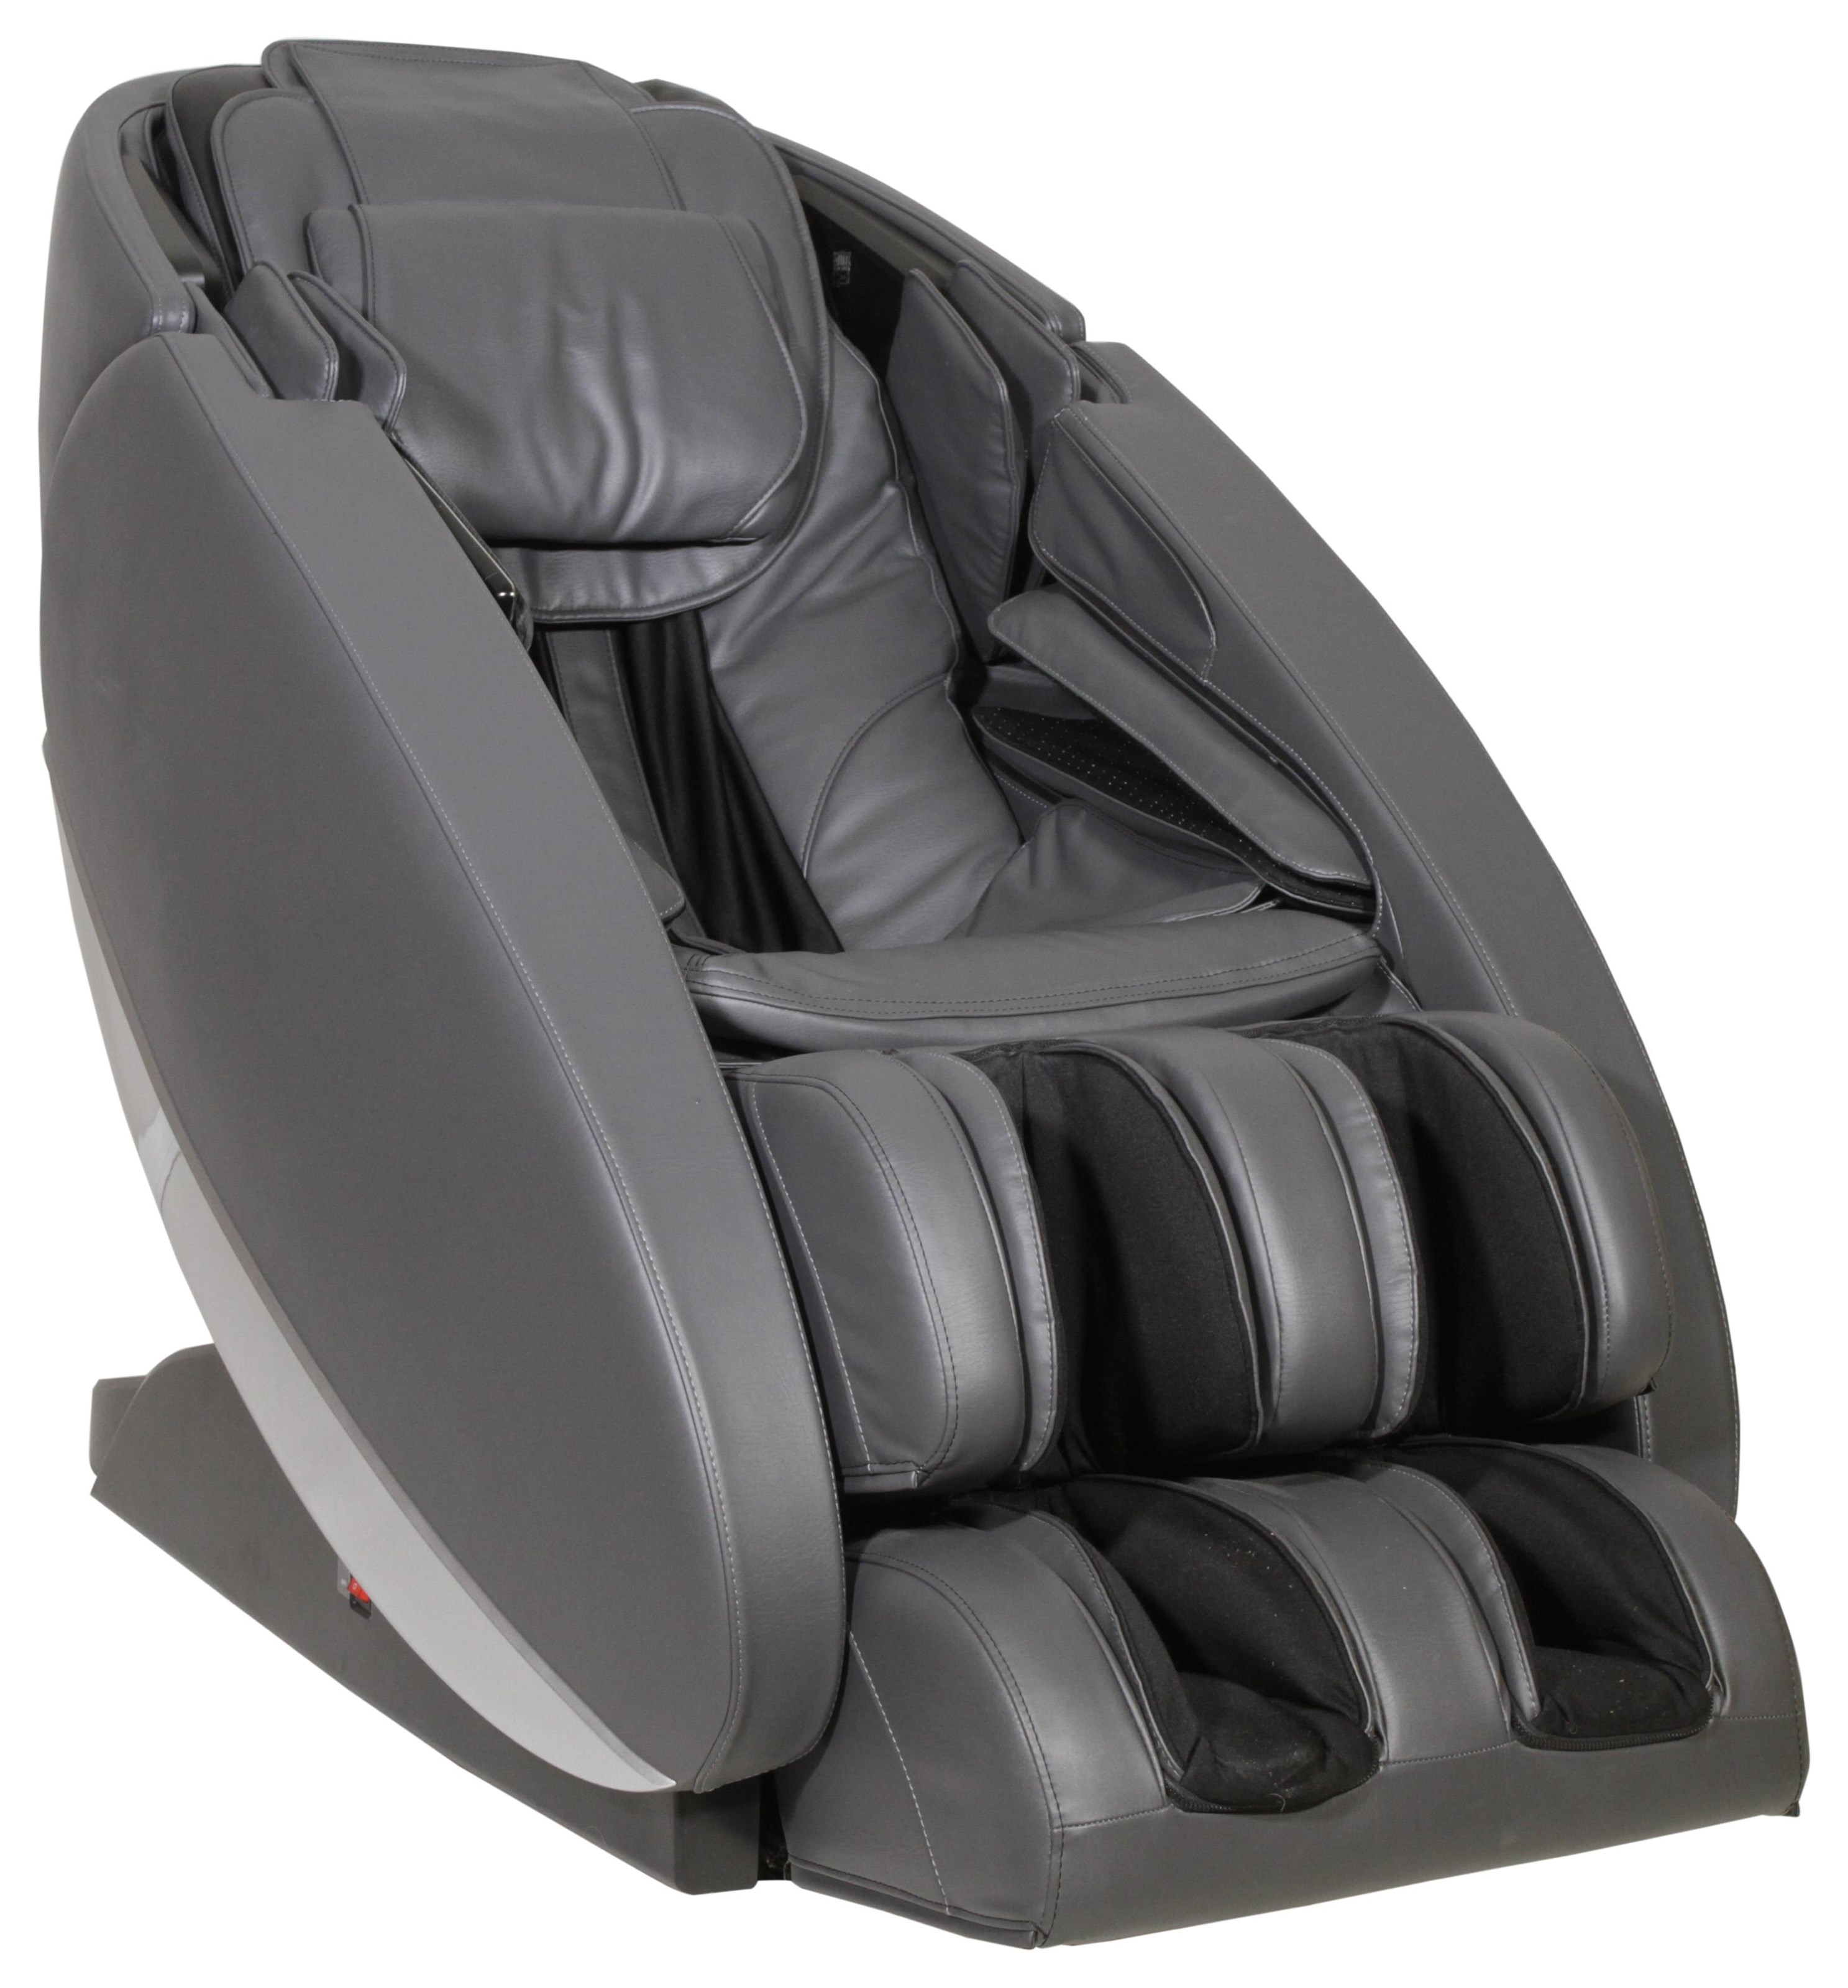 Novo XT2 Massage Chair by Human Touch at HomeWorld Furniture